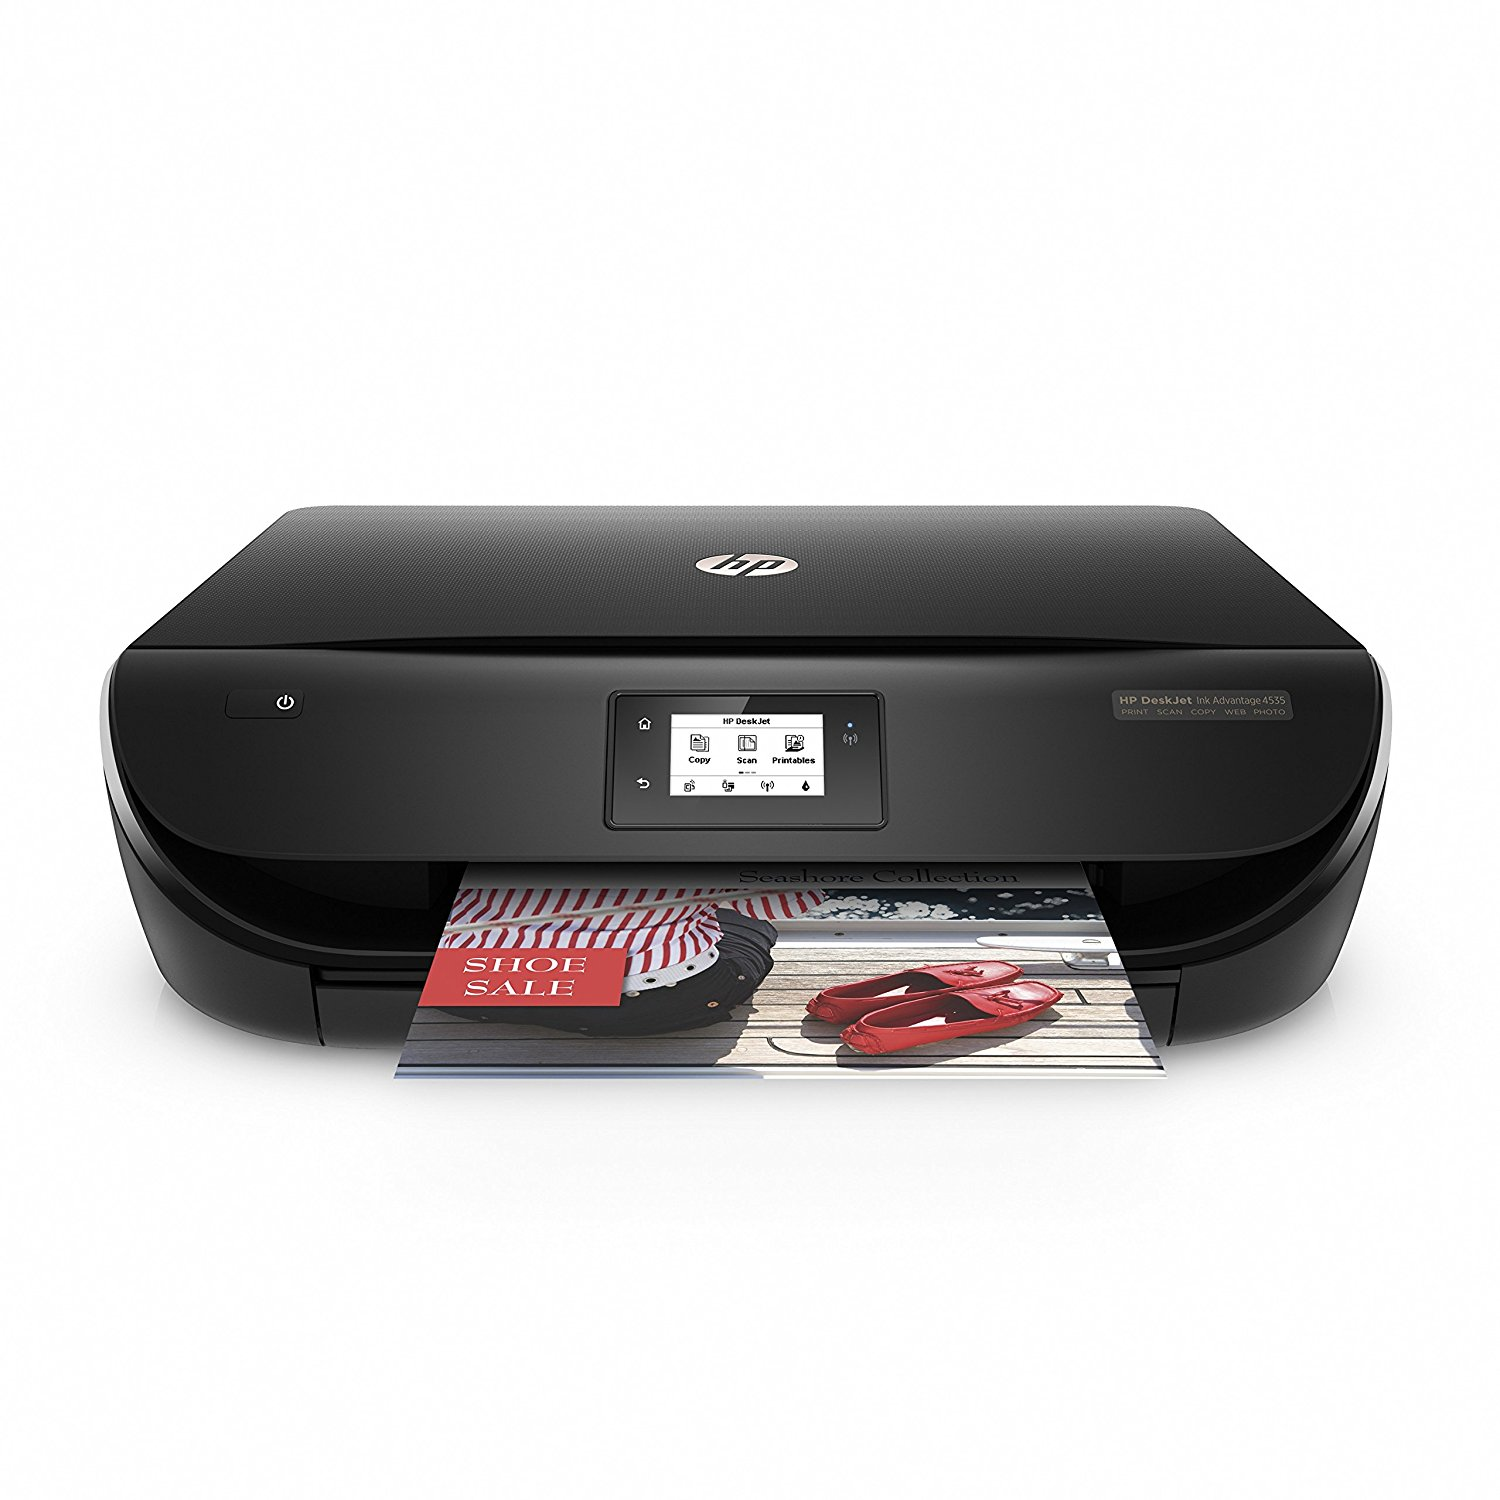 HP DESKJET 3475 WINDOWS 8 X64 DRIVER DOWNLOAD